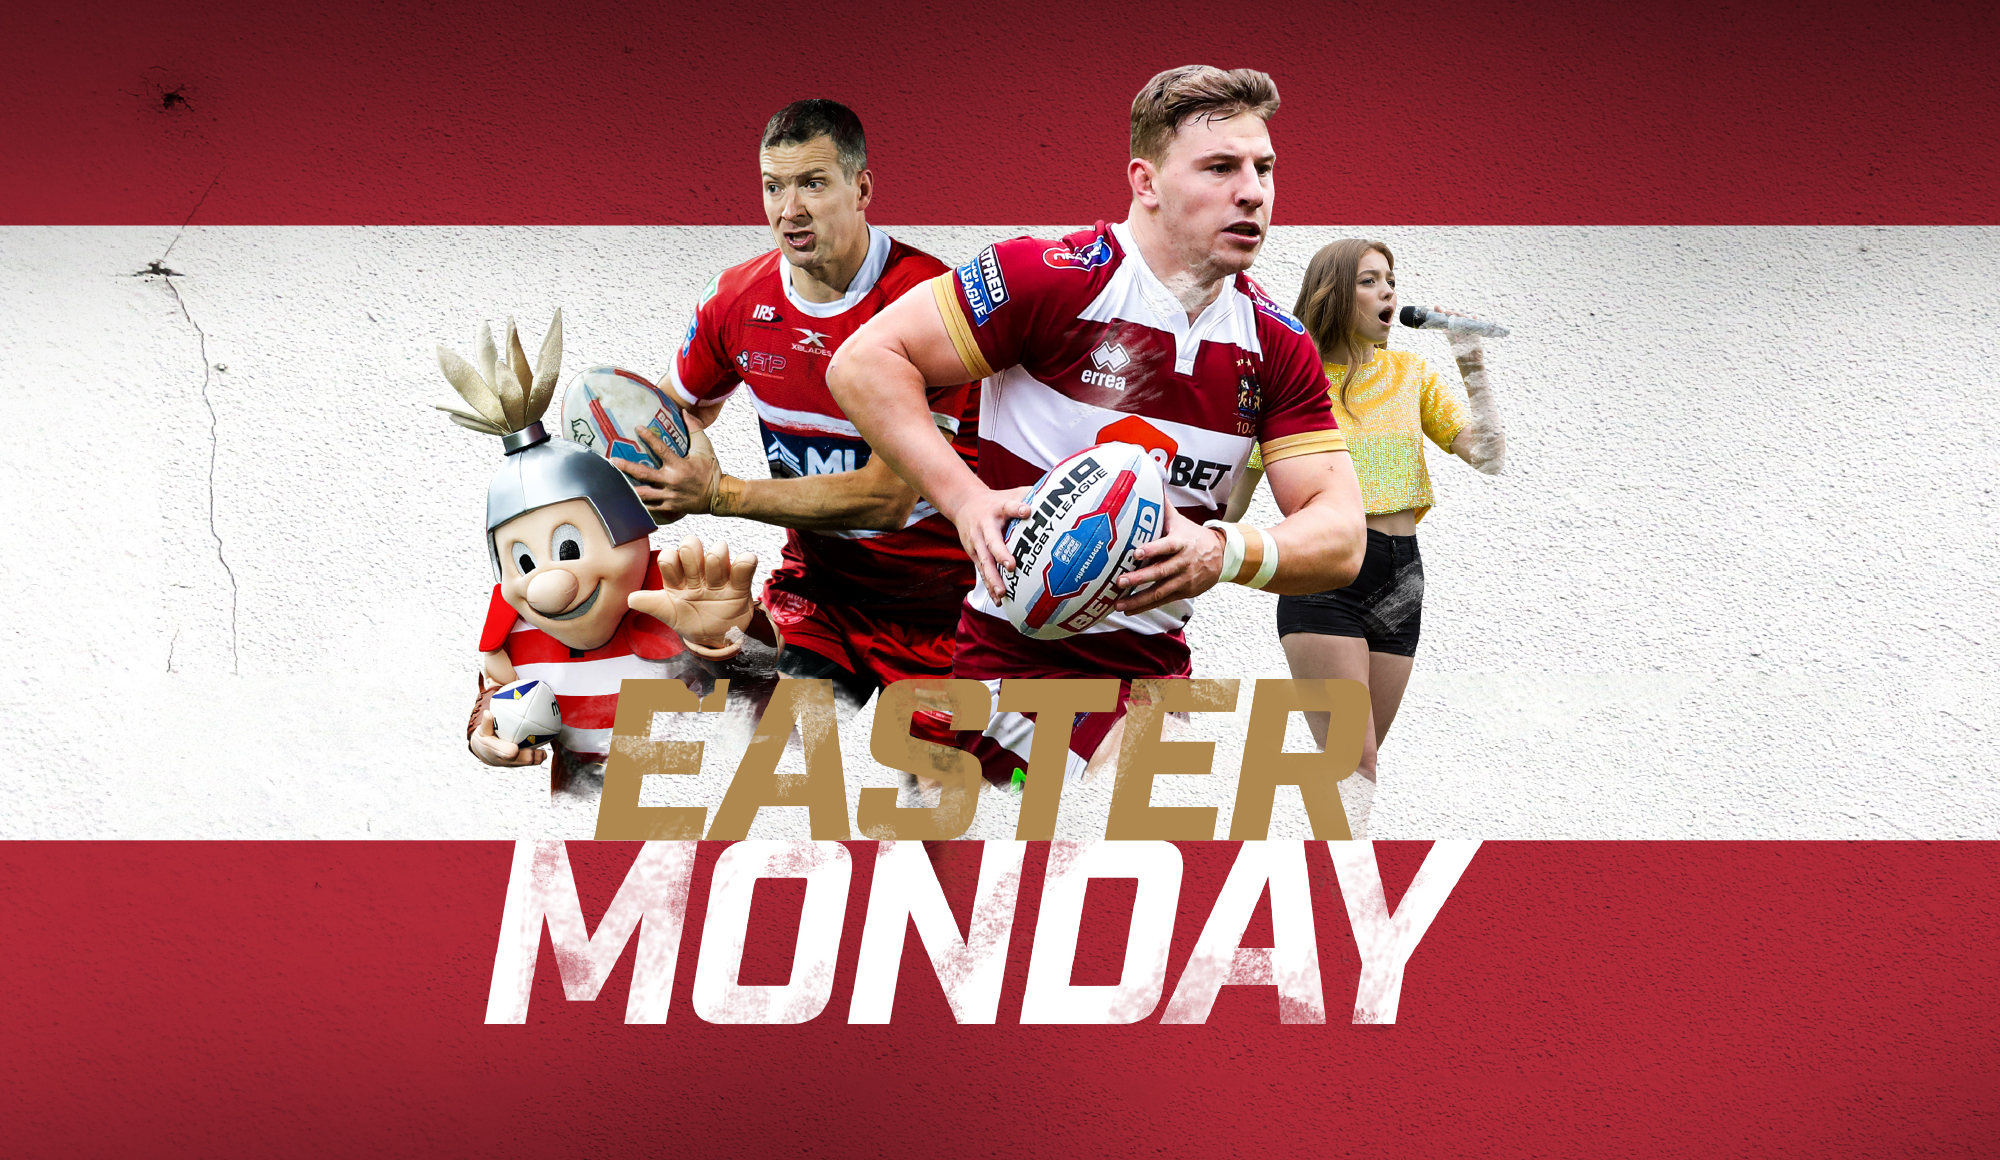 Easter Monday Family Ticket